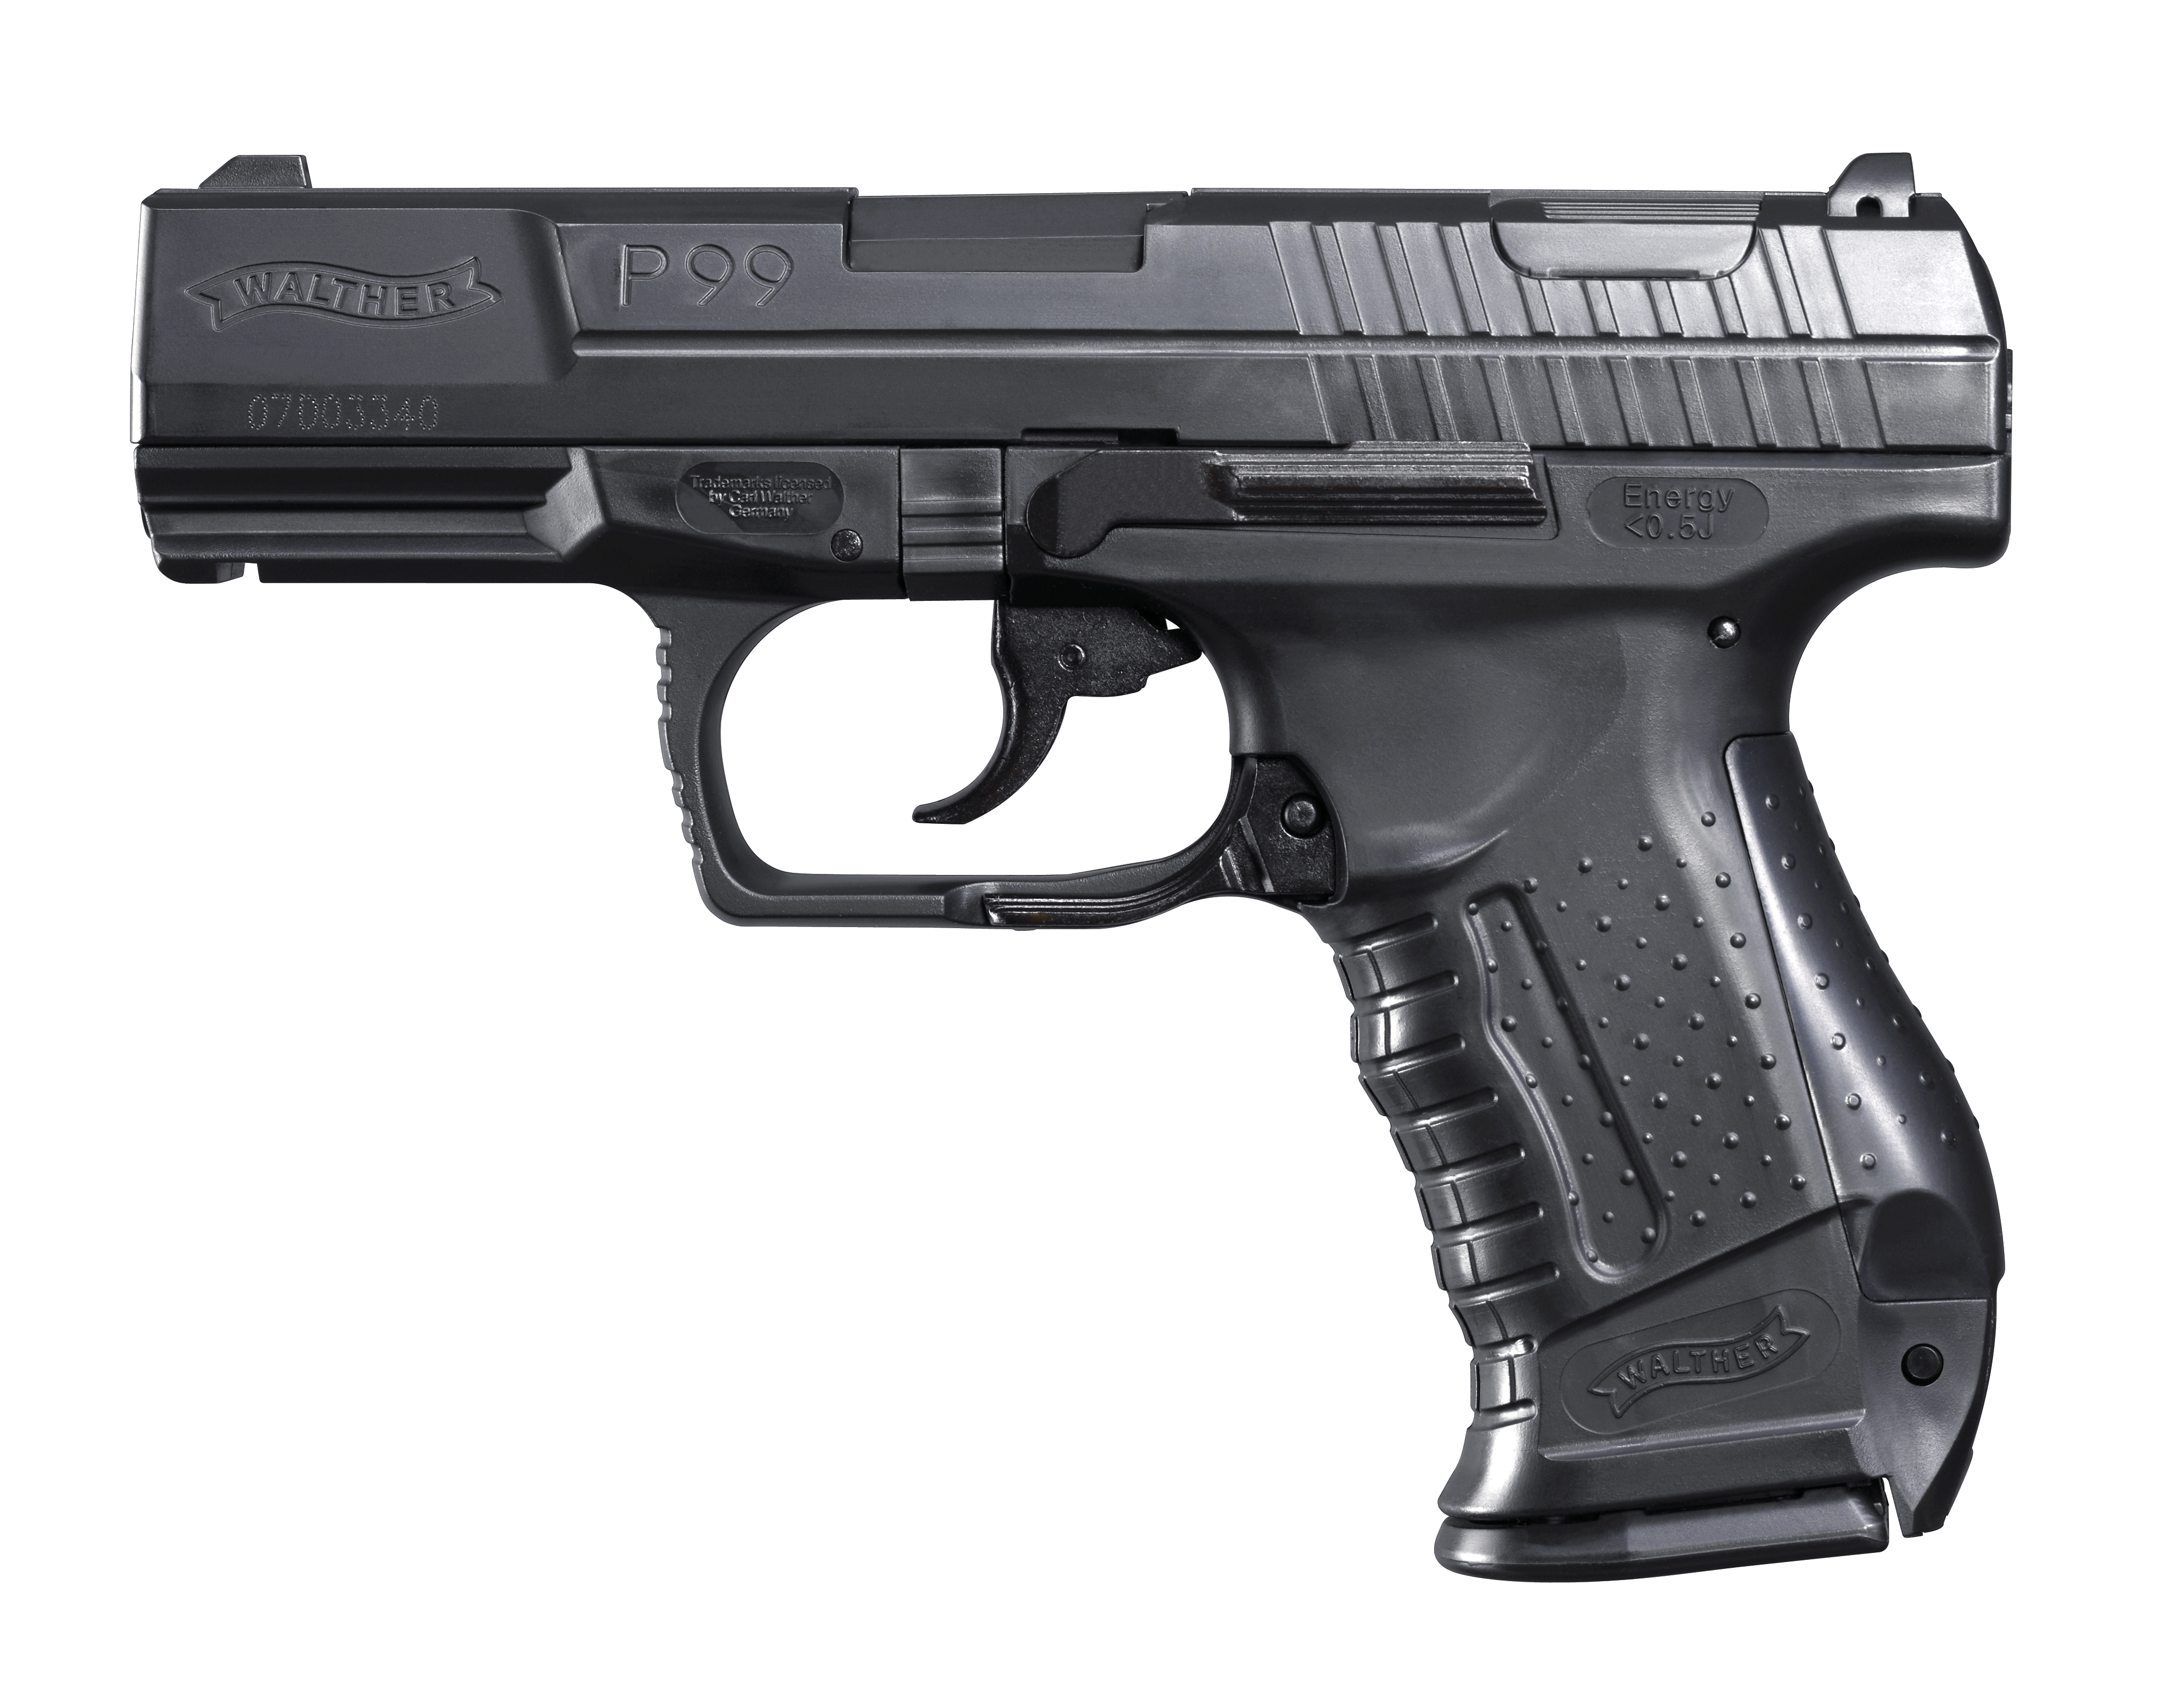 WALTHER (Umarex) Airsoft Spring Operated P99